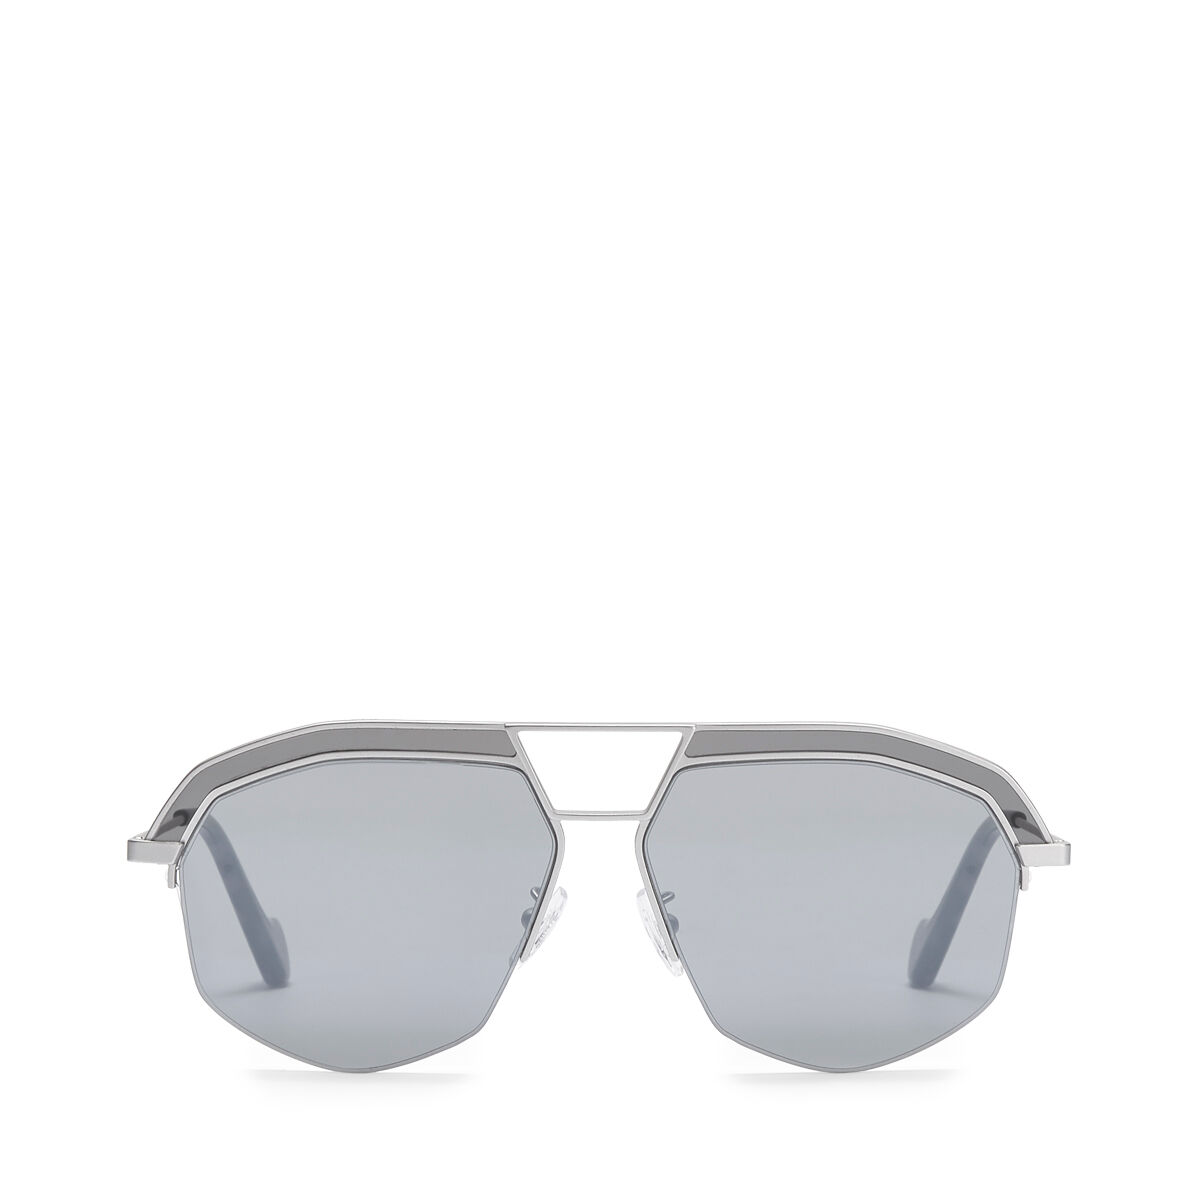 LOEWE Geometrical Sunglasses Mate Rhodium/Grey all